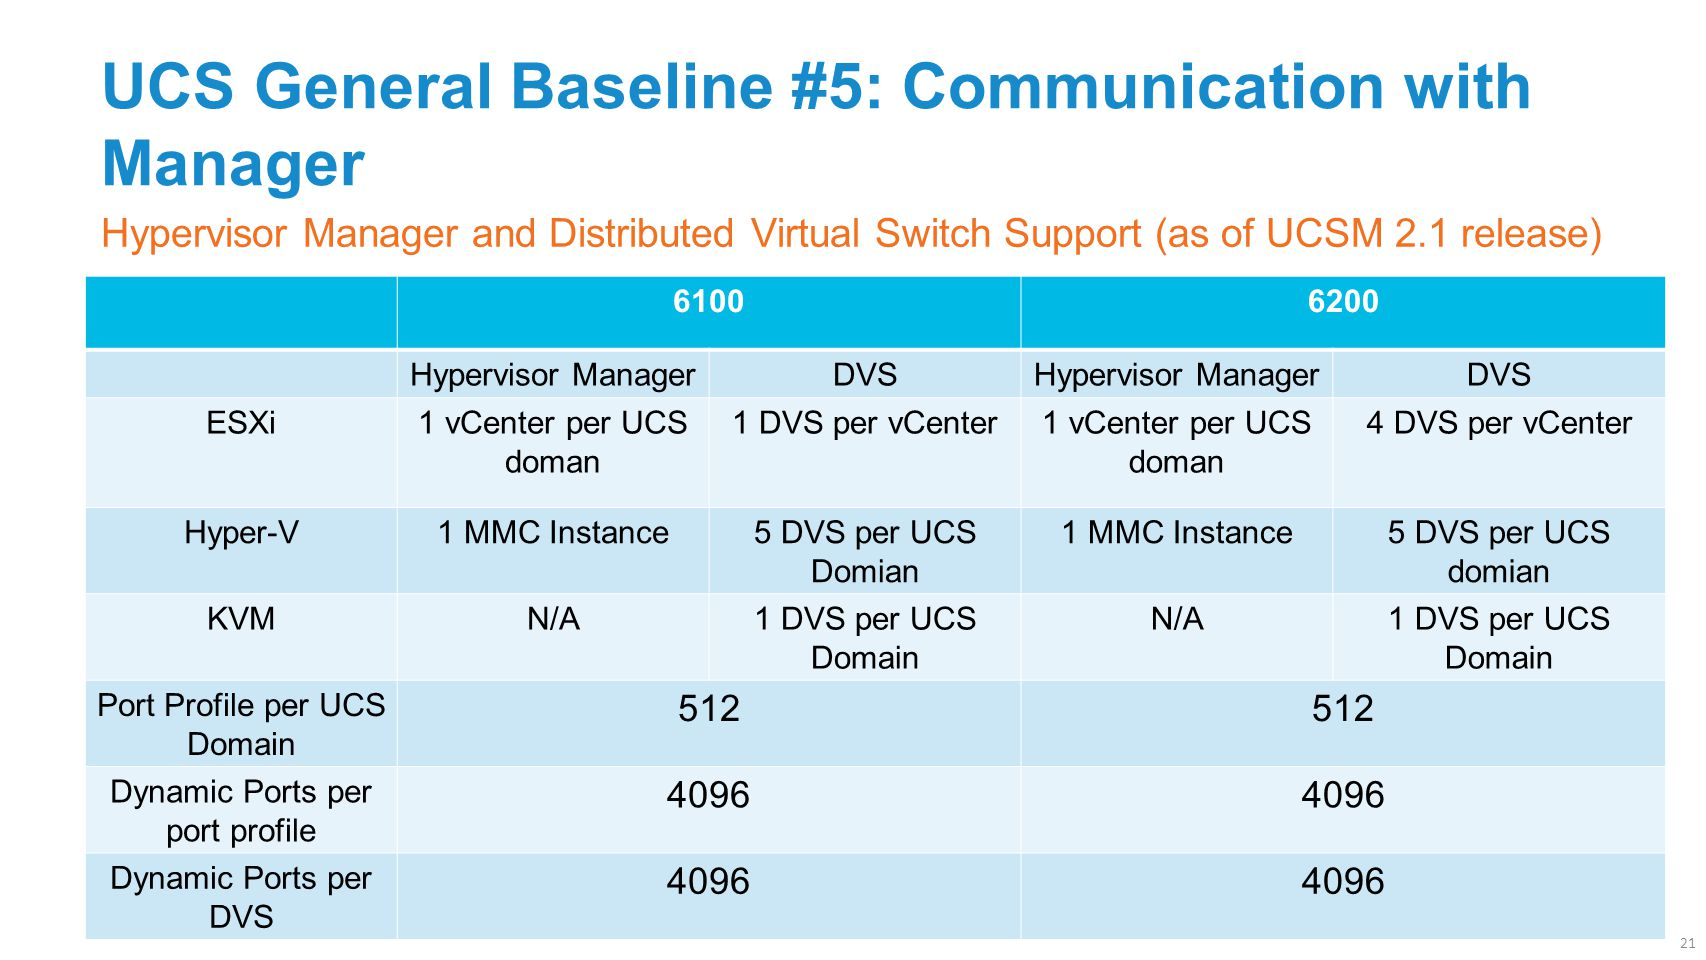 UCS General Baseline #5: Communication with Manager 61006200 Hypervisor ManagerDVSHypervisor ManagerDVS ESXi1 vCenter per UCS doman 1 DVS per vCenter1 vCenter per UCS doman 4 DVS per vCenter Hyper-V1 MMC Instance5 DVS per UCS Domian 1 MMC Instance5 DVS per UCS domian KVMN/A1 DVS per UCS Domain N/A1 DVS per UCS Domain Port Profile per UCS Domain 512 Dynamic Ports per port profile 4096 Dynamic Ports per DVS 4096 21 Hypervisor Manager and Distributed Virtual Switch Support (as of UCSM 2.1 release)